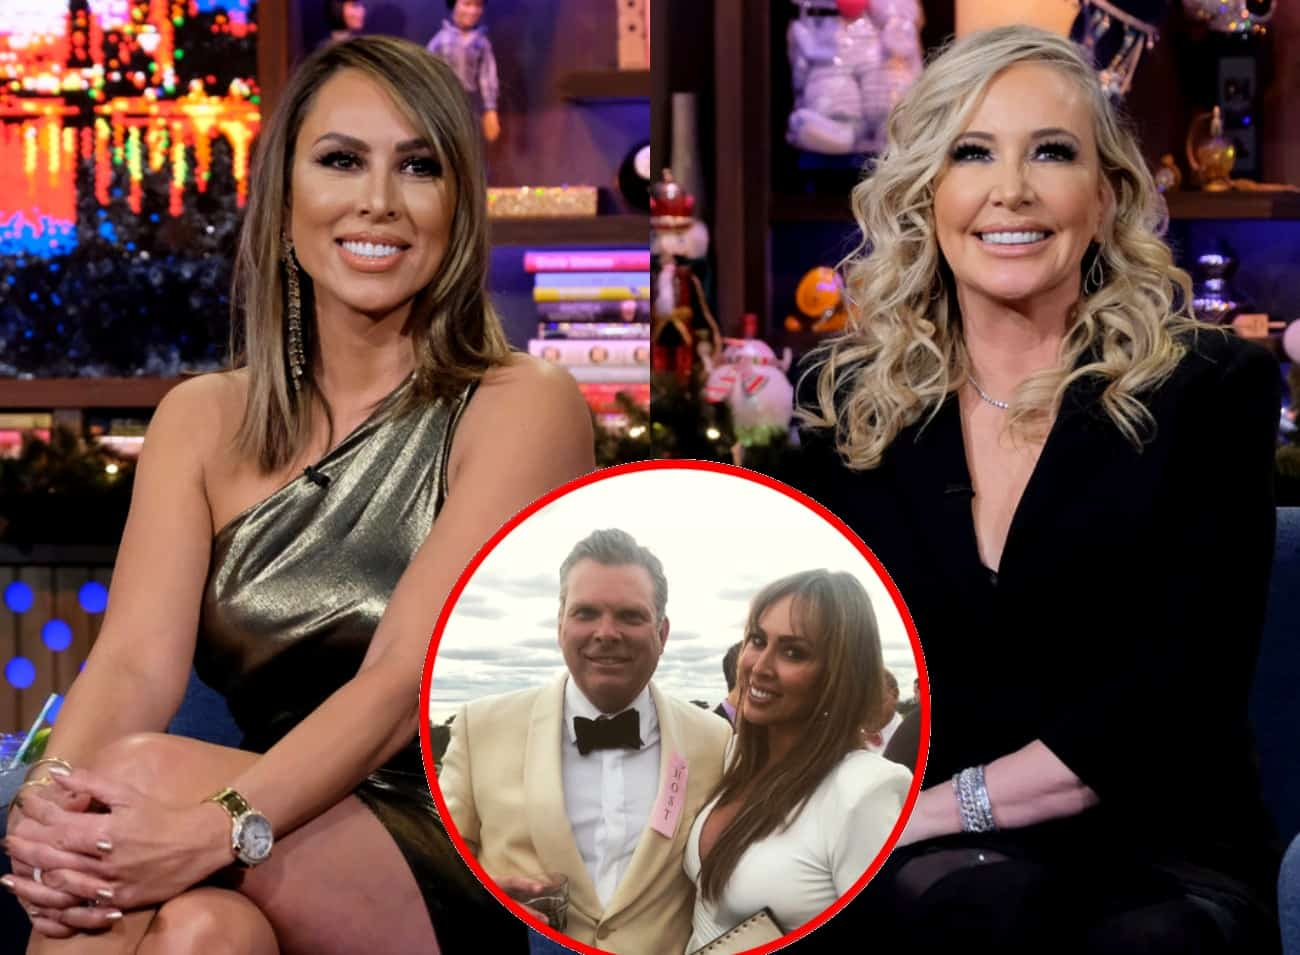 Did RHOC Star Kelly Dodd's Ex-Boyfriend Dr. Brian Reagan Violate HIPPA Laws